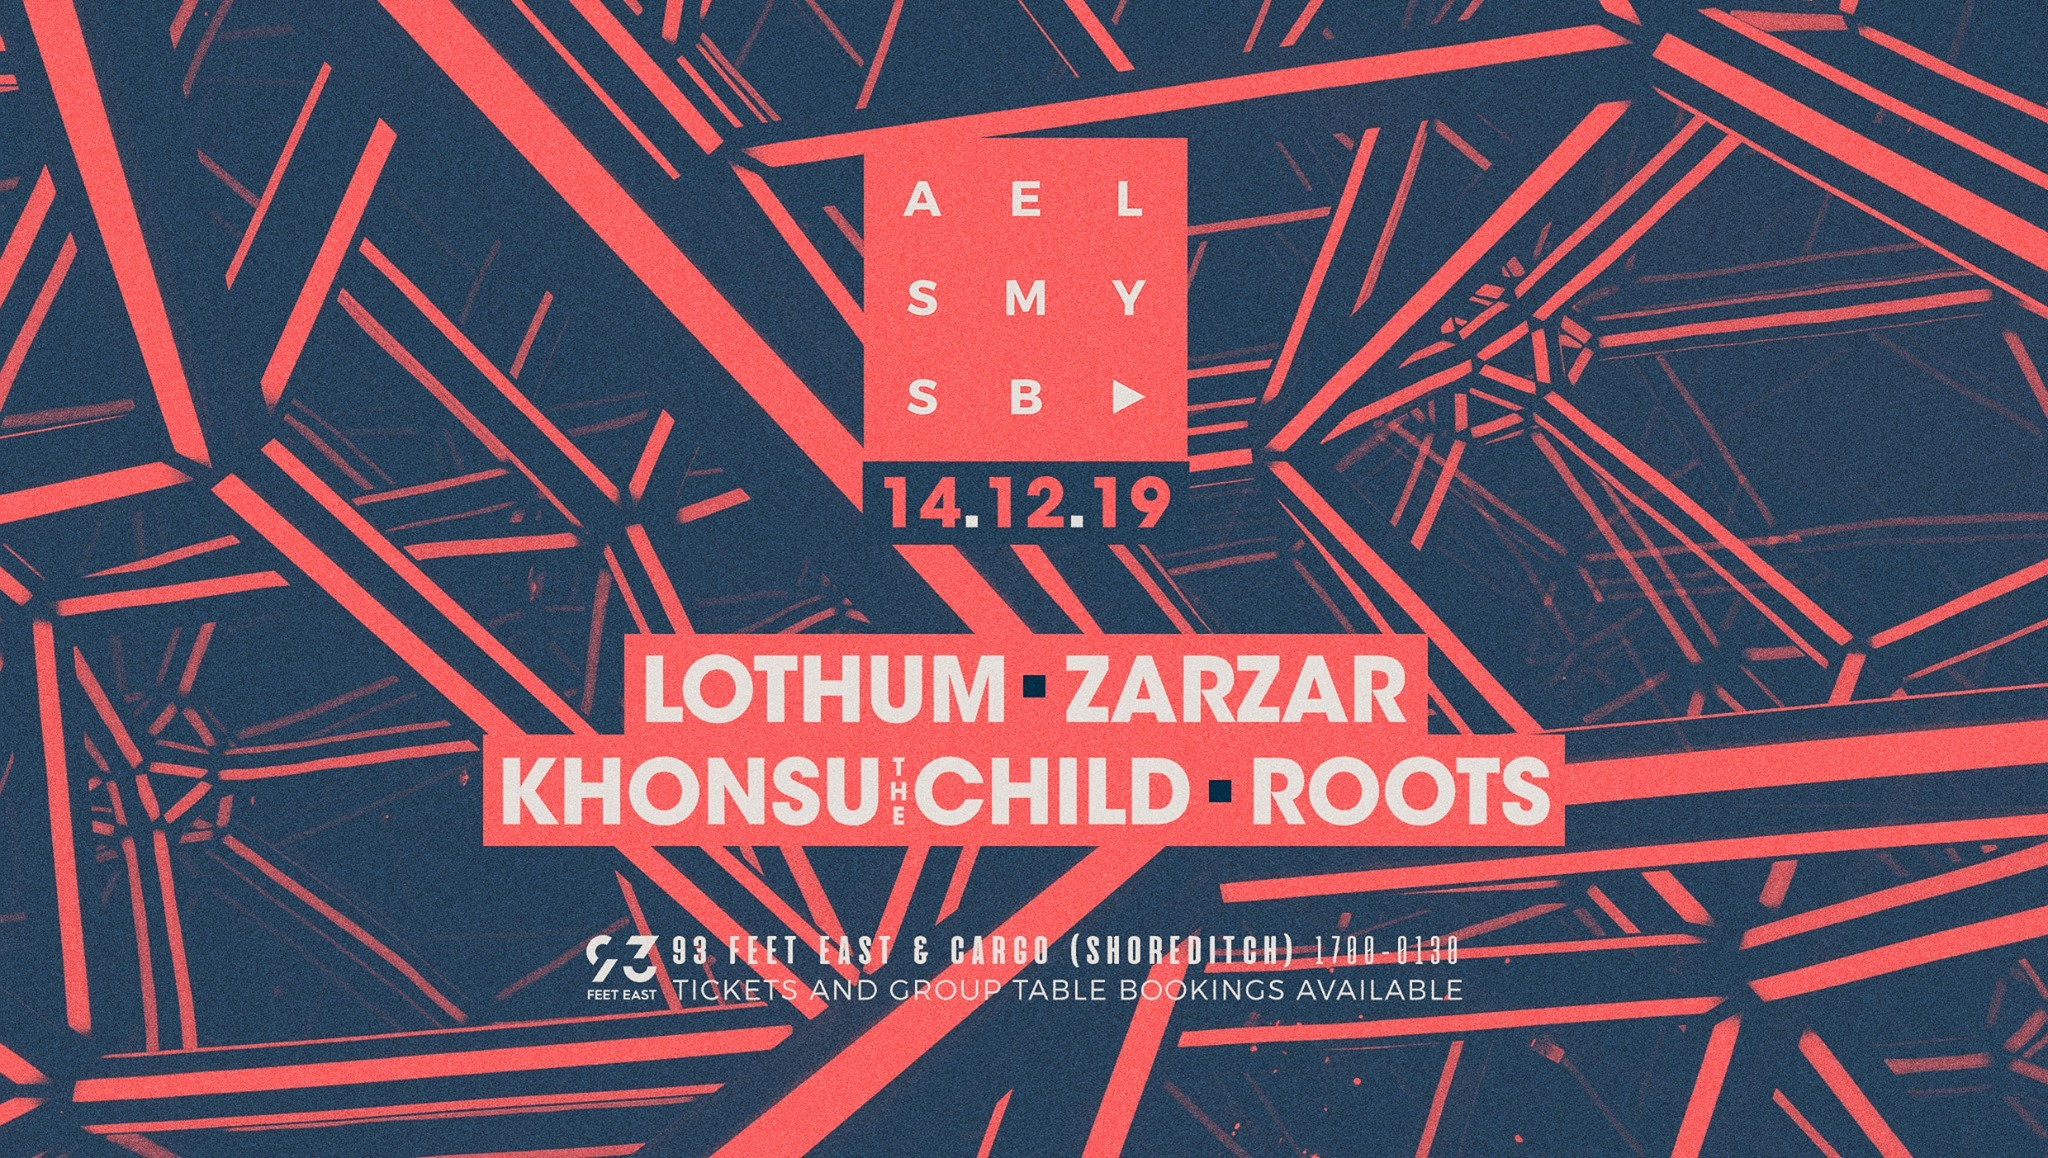 Brick Lane Winter House & courtyard party: Assembly